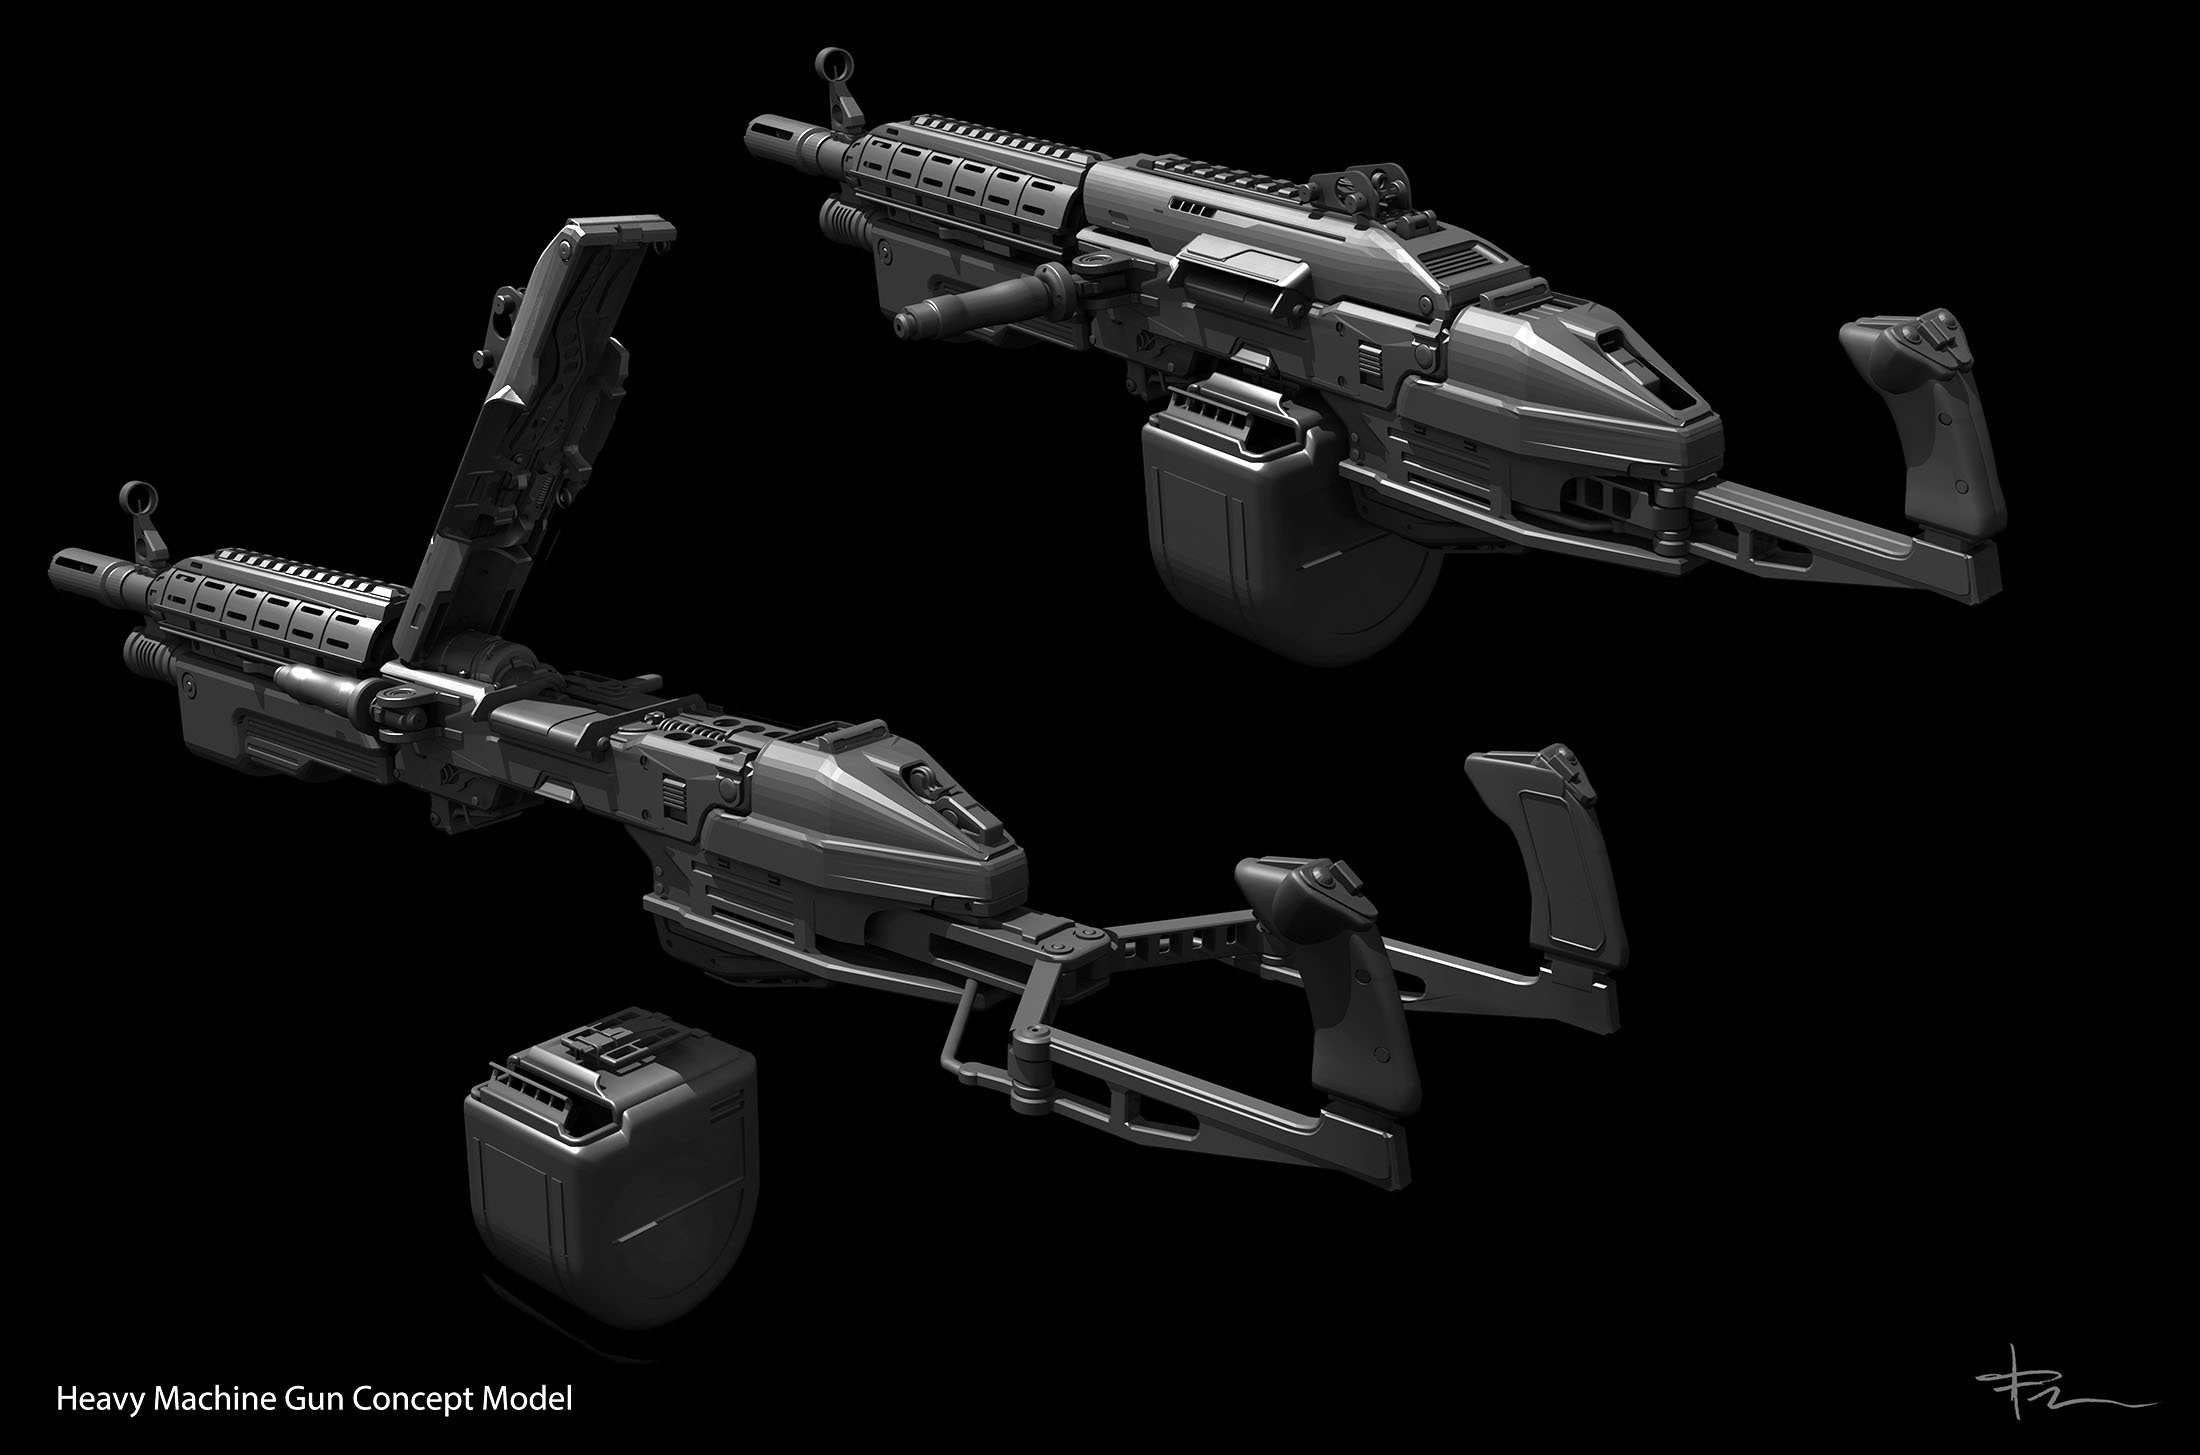 TJFRame-Art_Evolve_HeavyMachineGunConcepts1.jpg